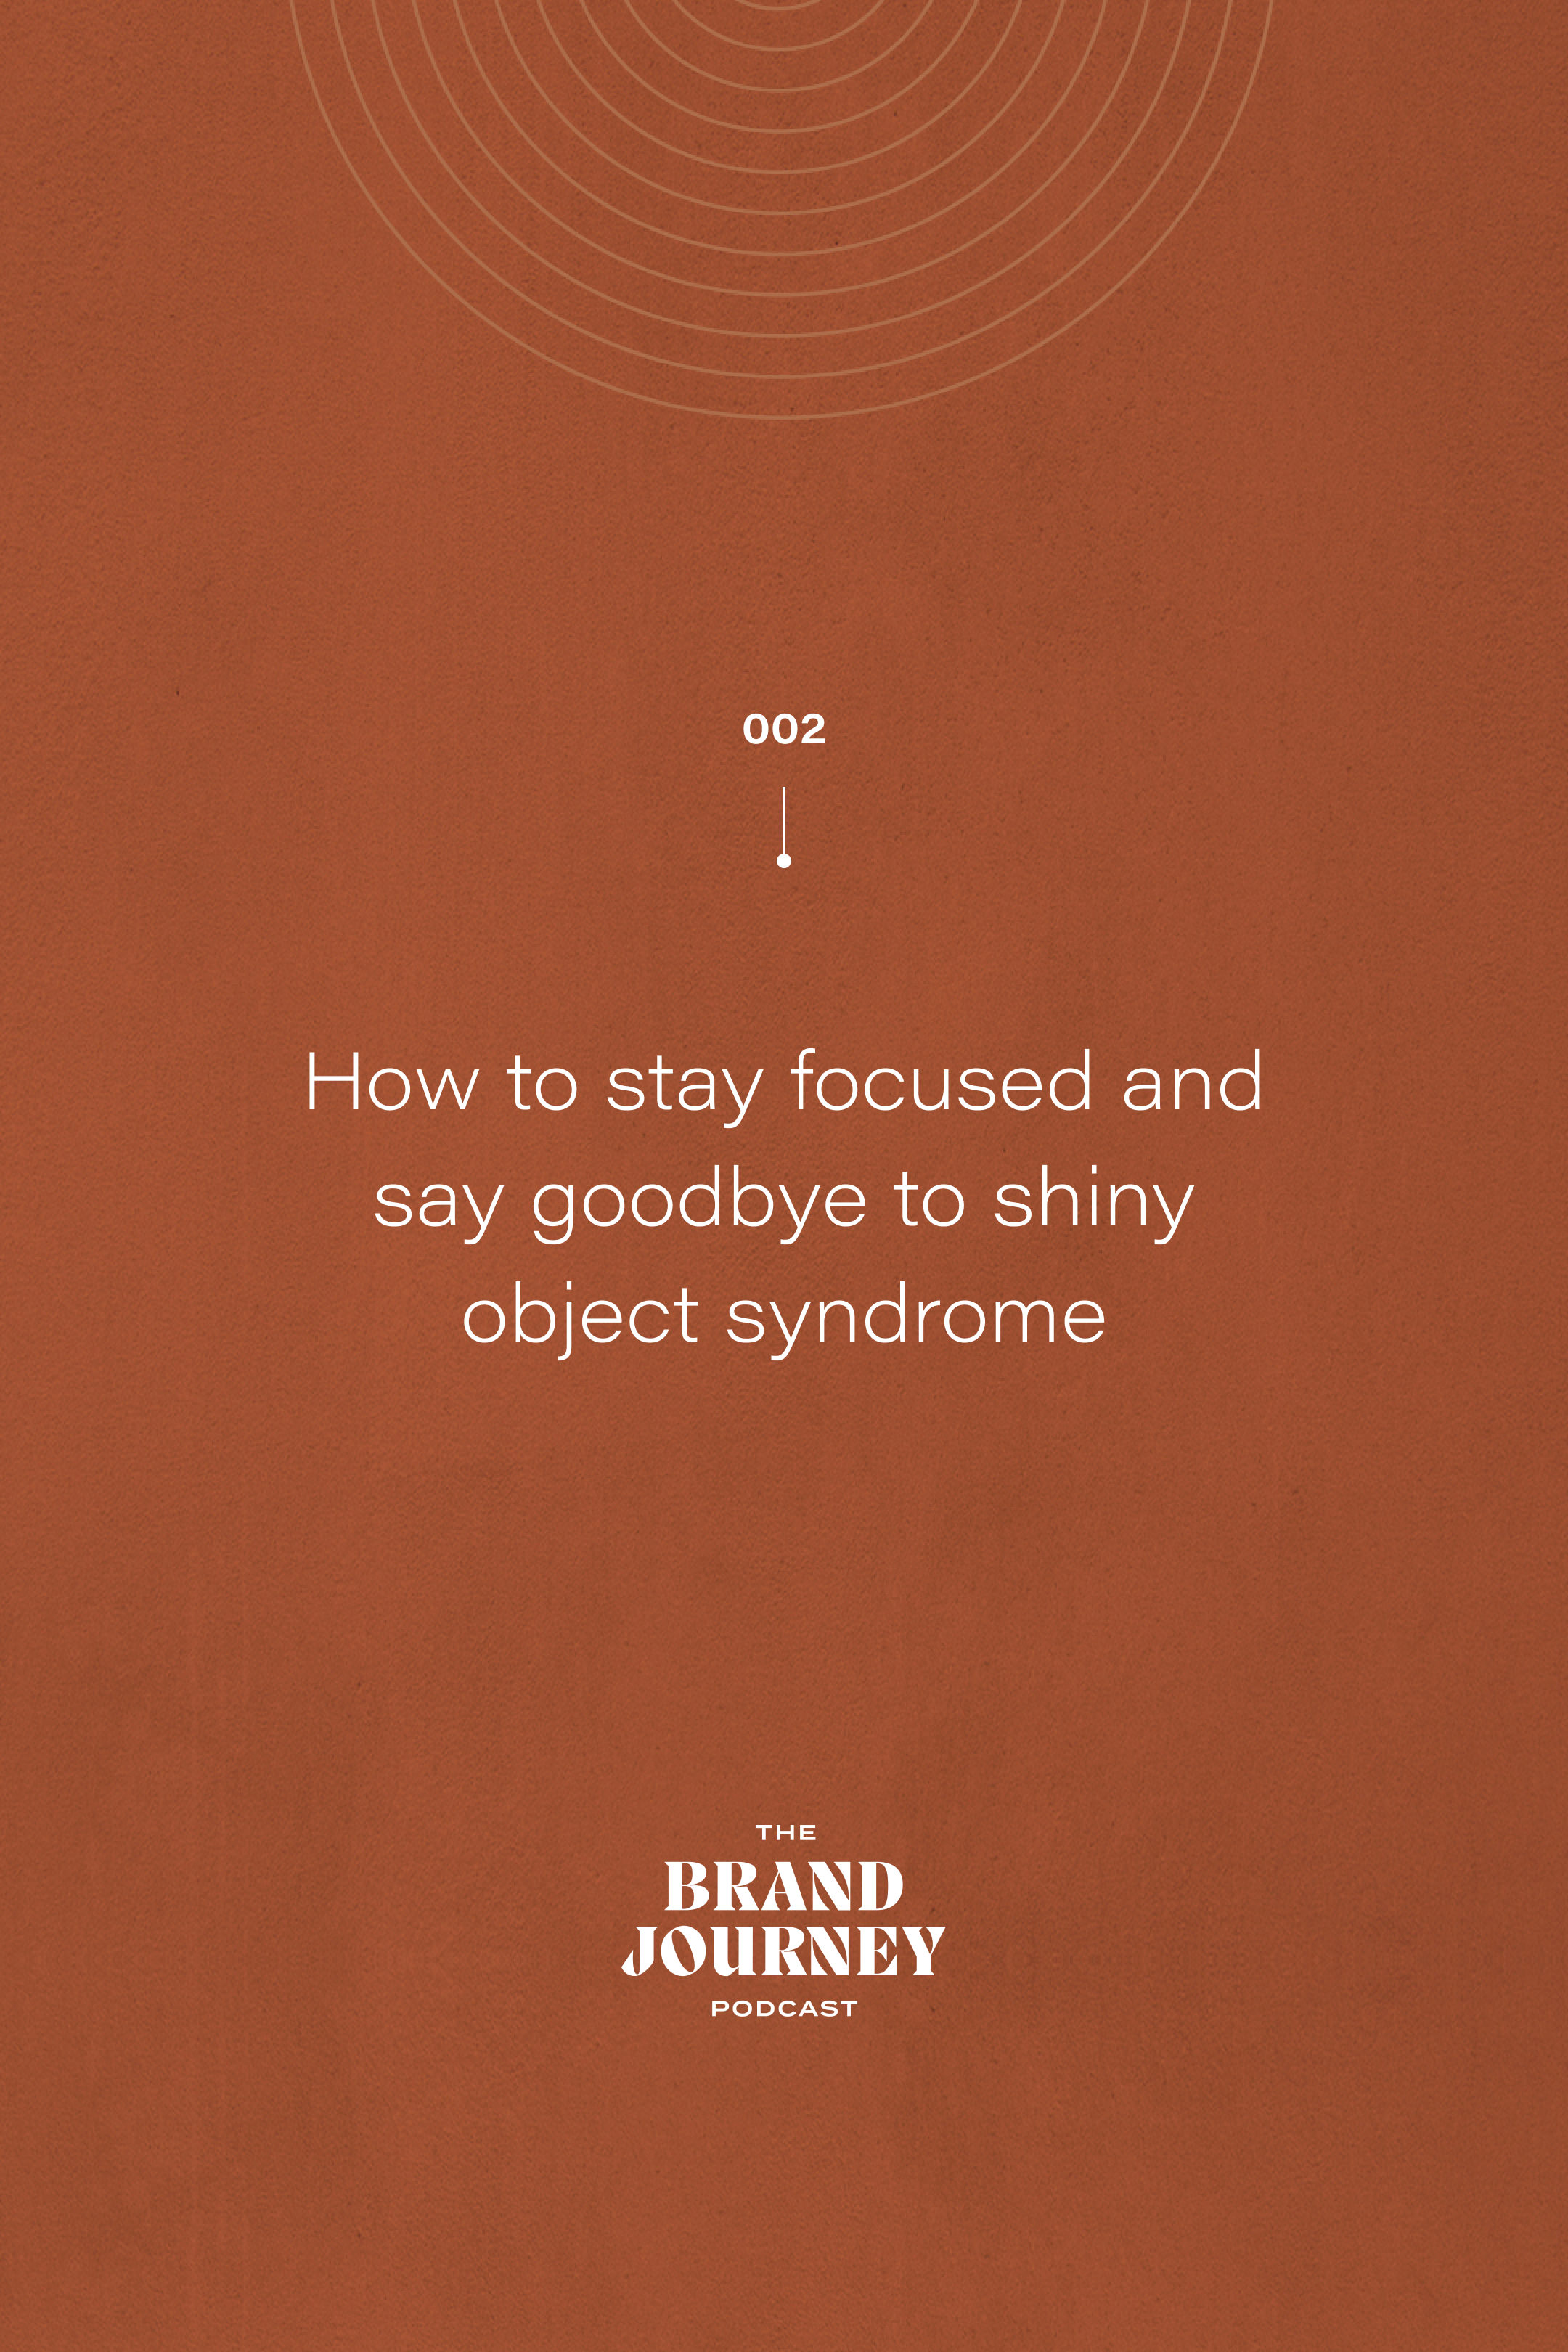 How to stay focused and say goodbye to shiny object syndrome